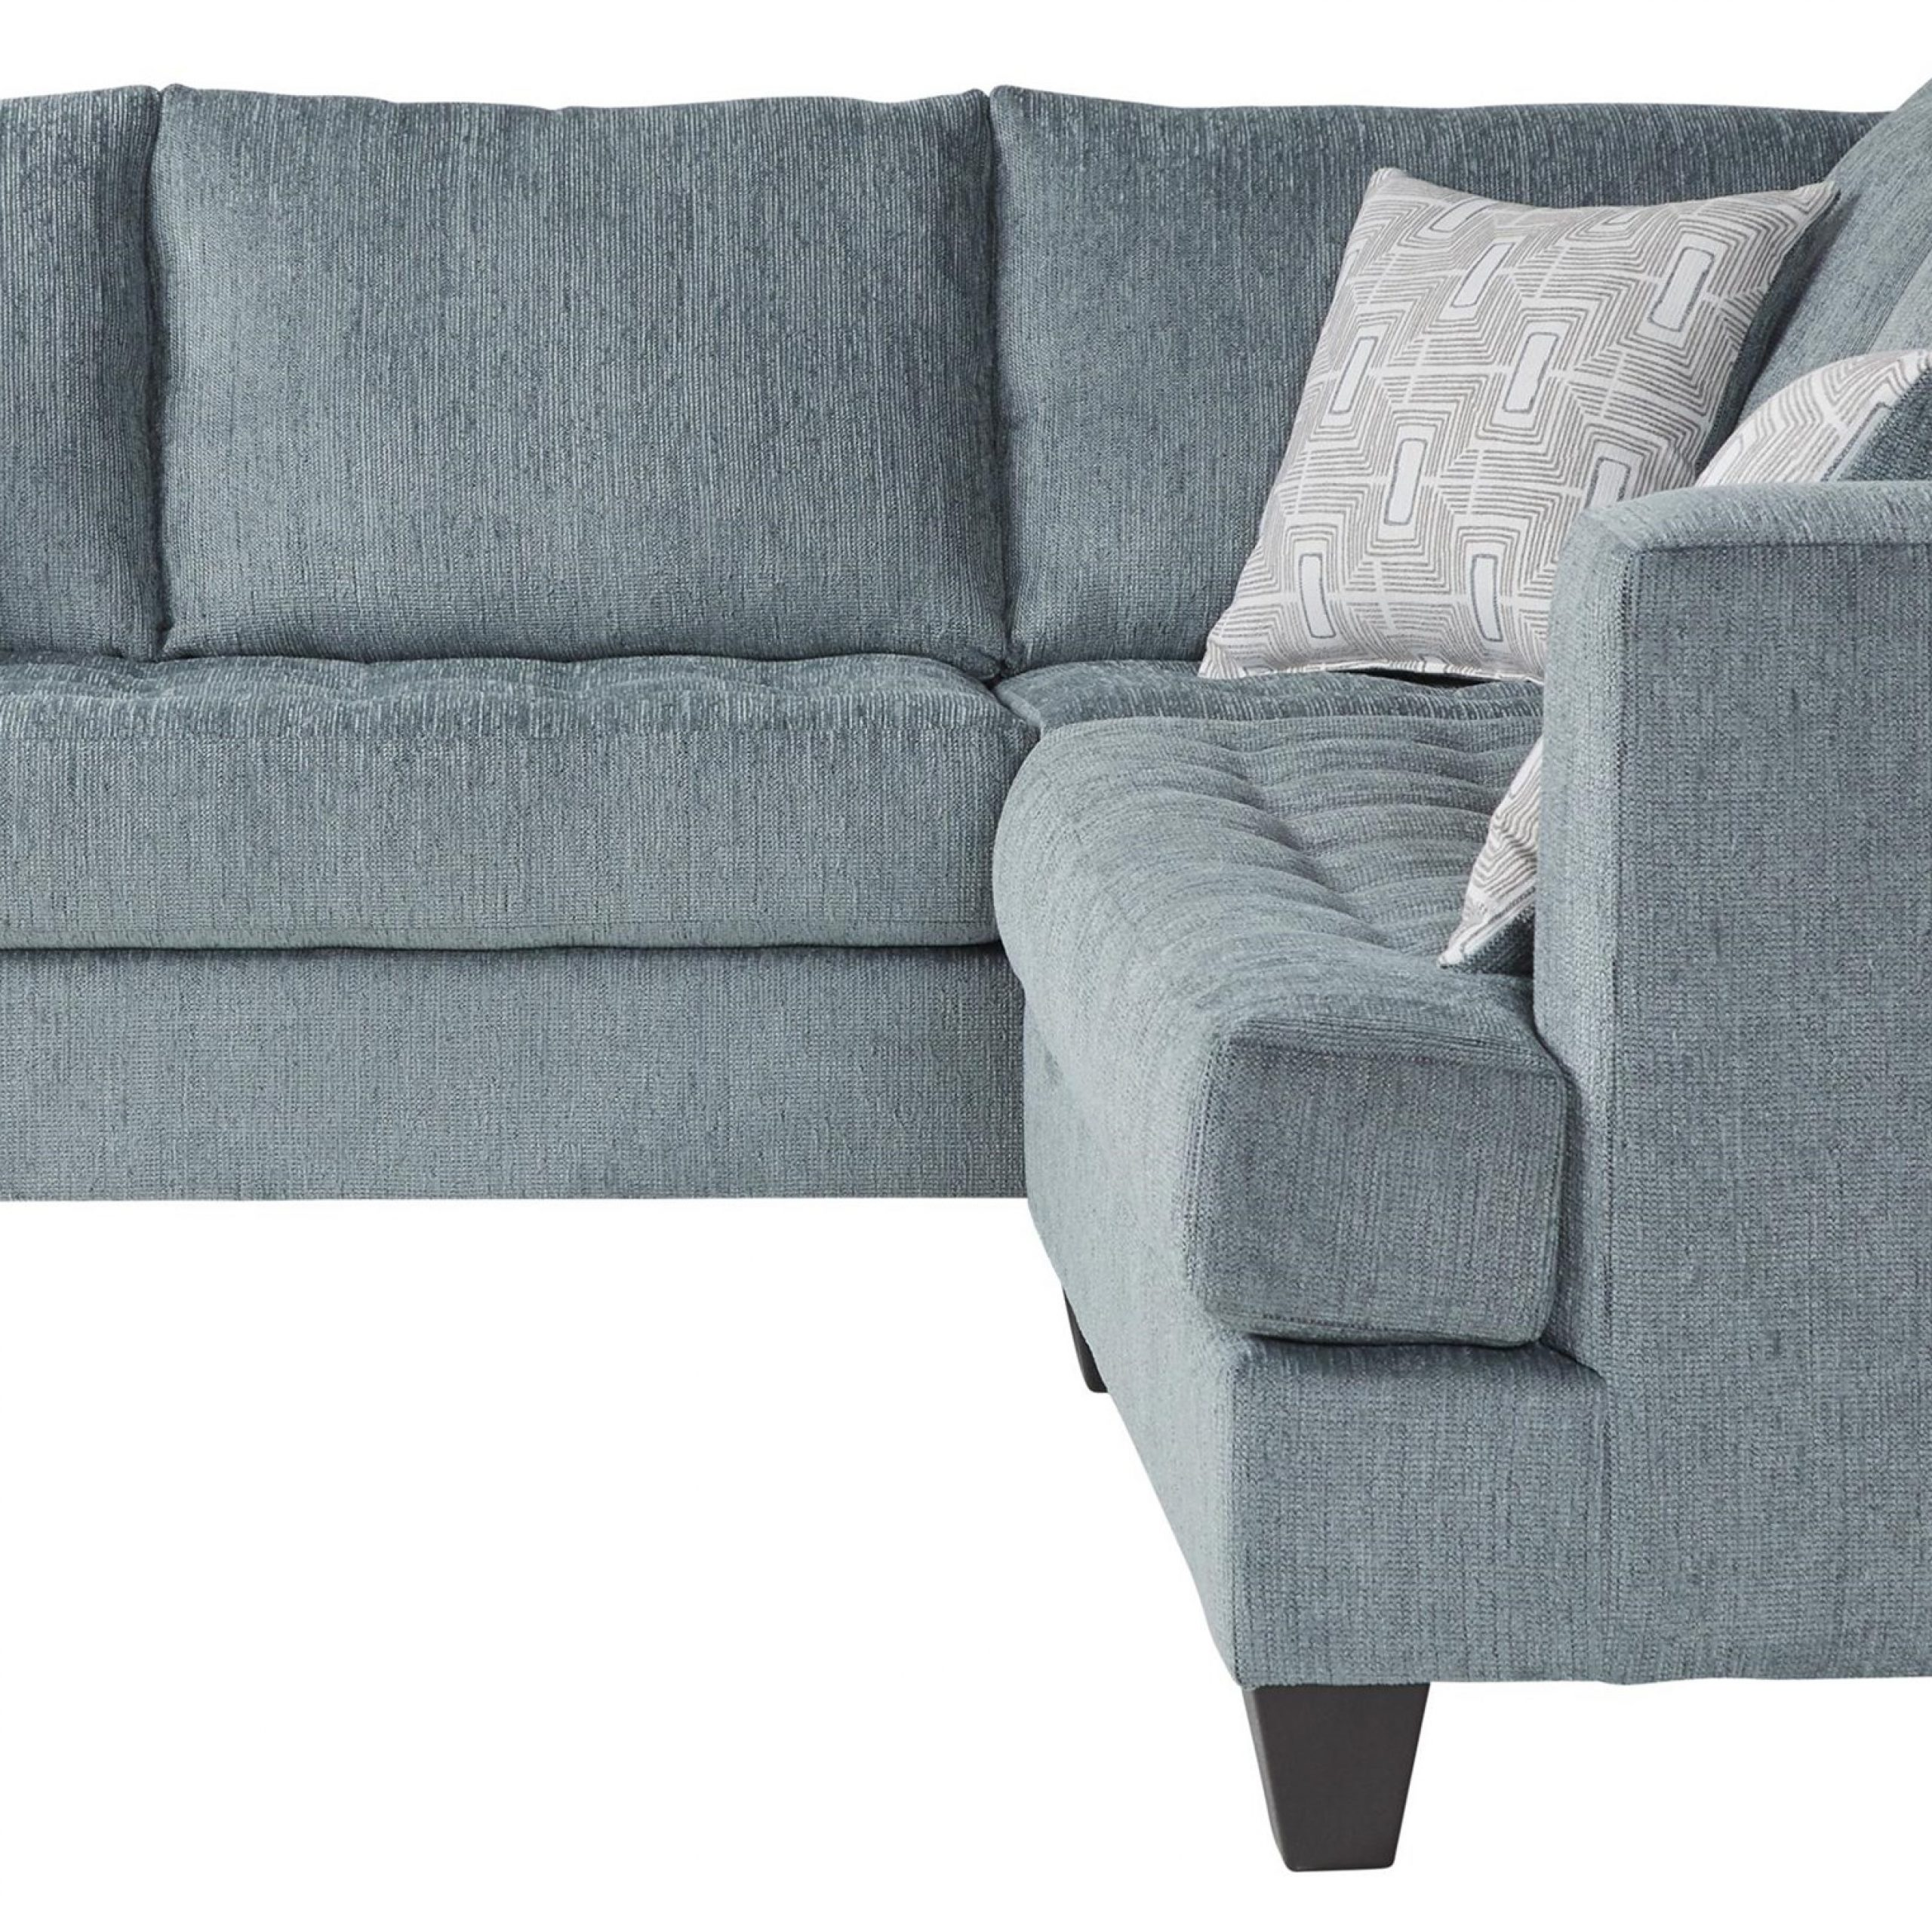 Serta Upholstery Sectionals: Ashas Spiritual Essence With Regard To Harmon Roll Arm Sectional Sofas (View 6 of 15)